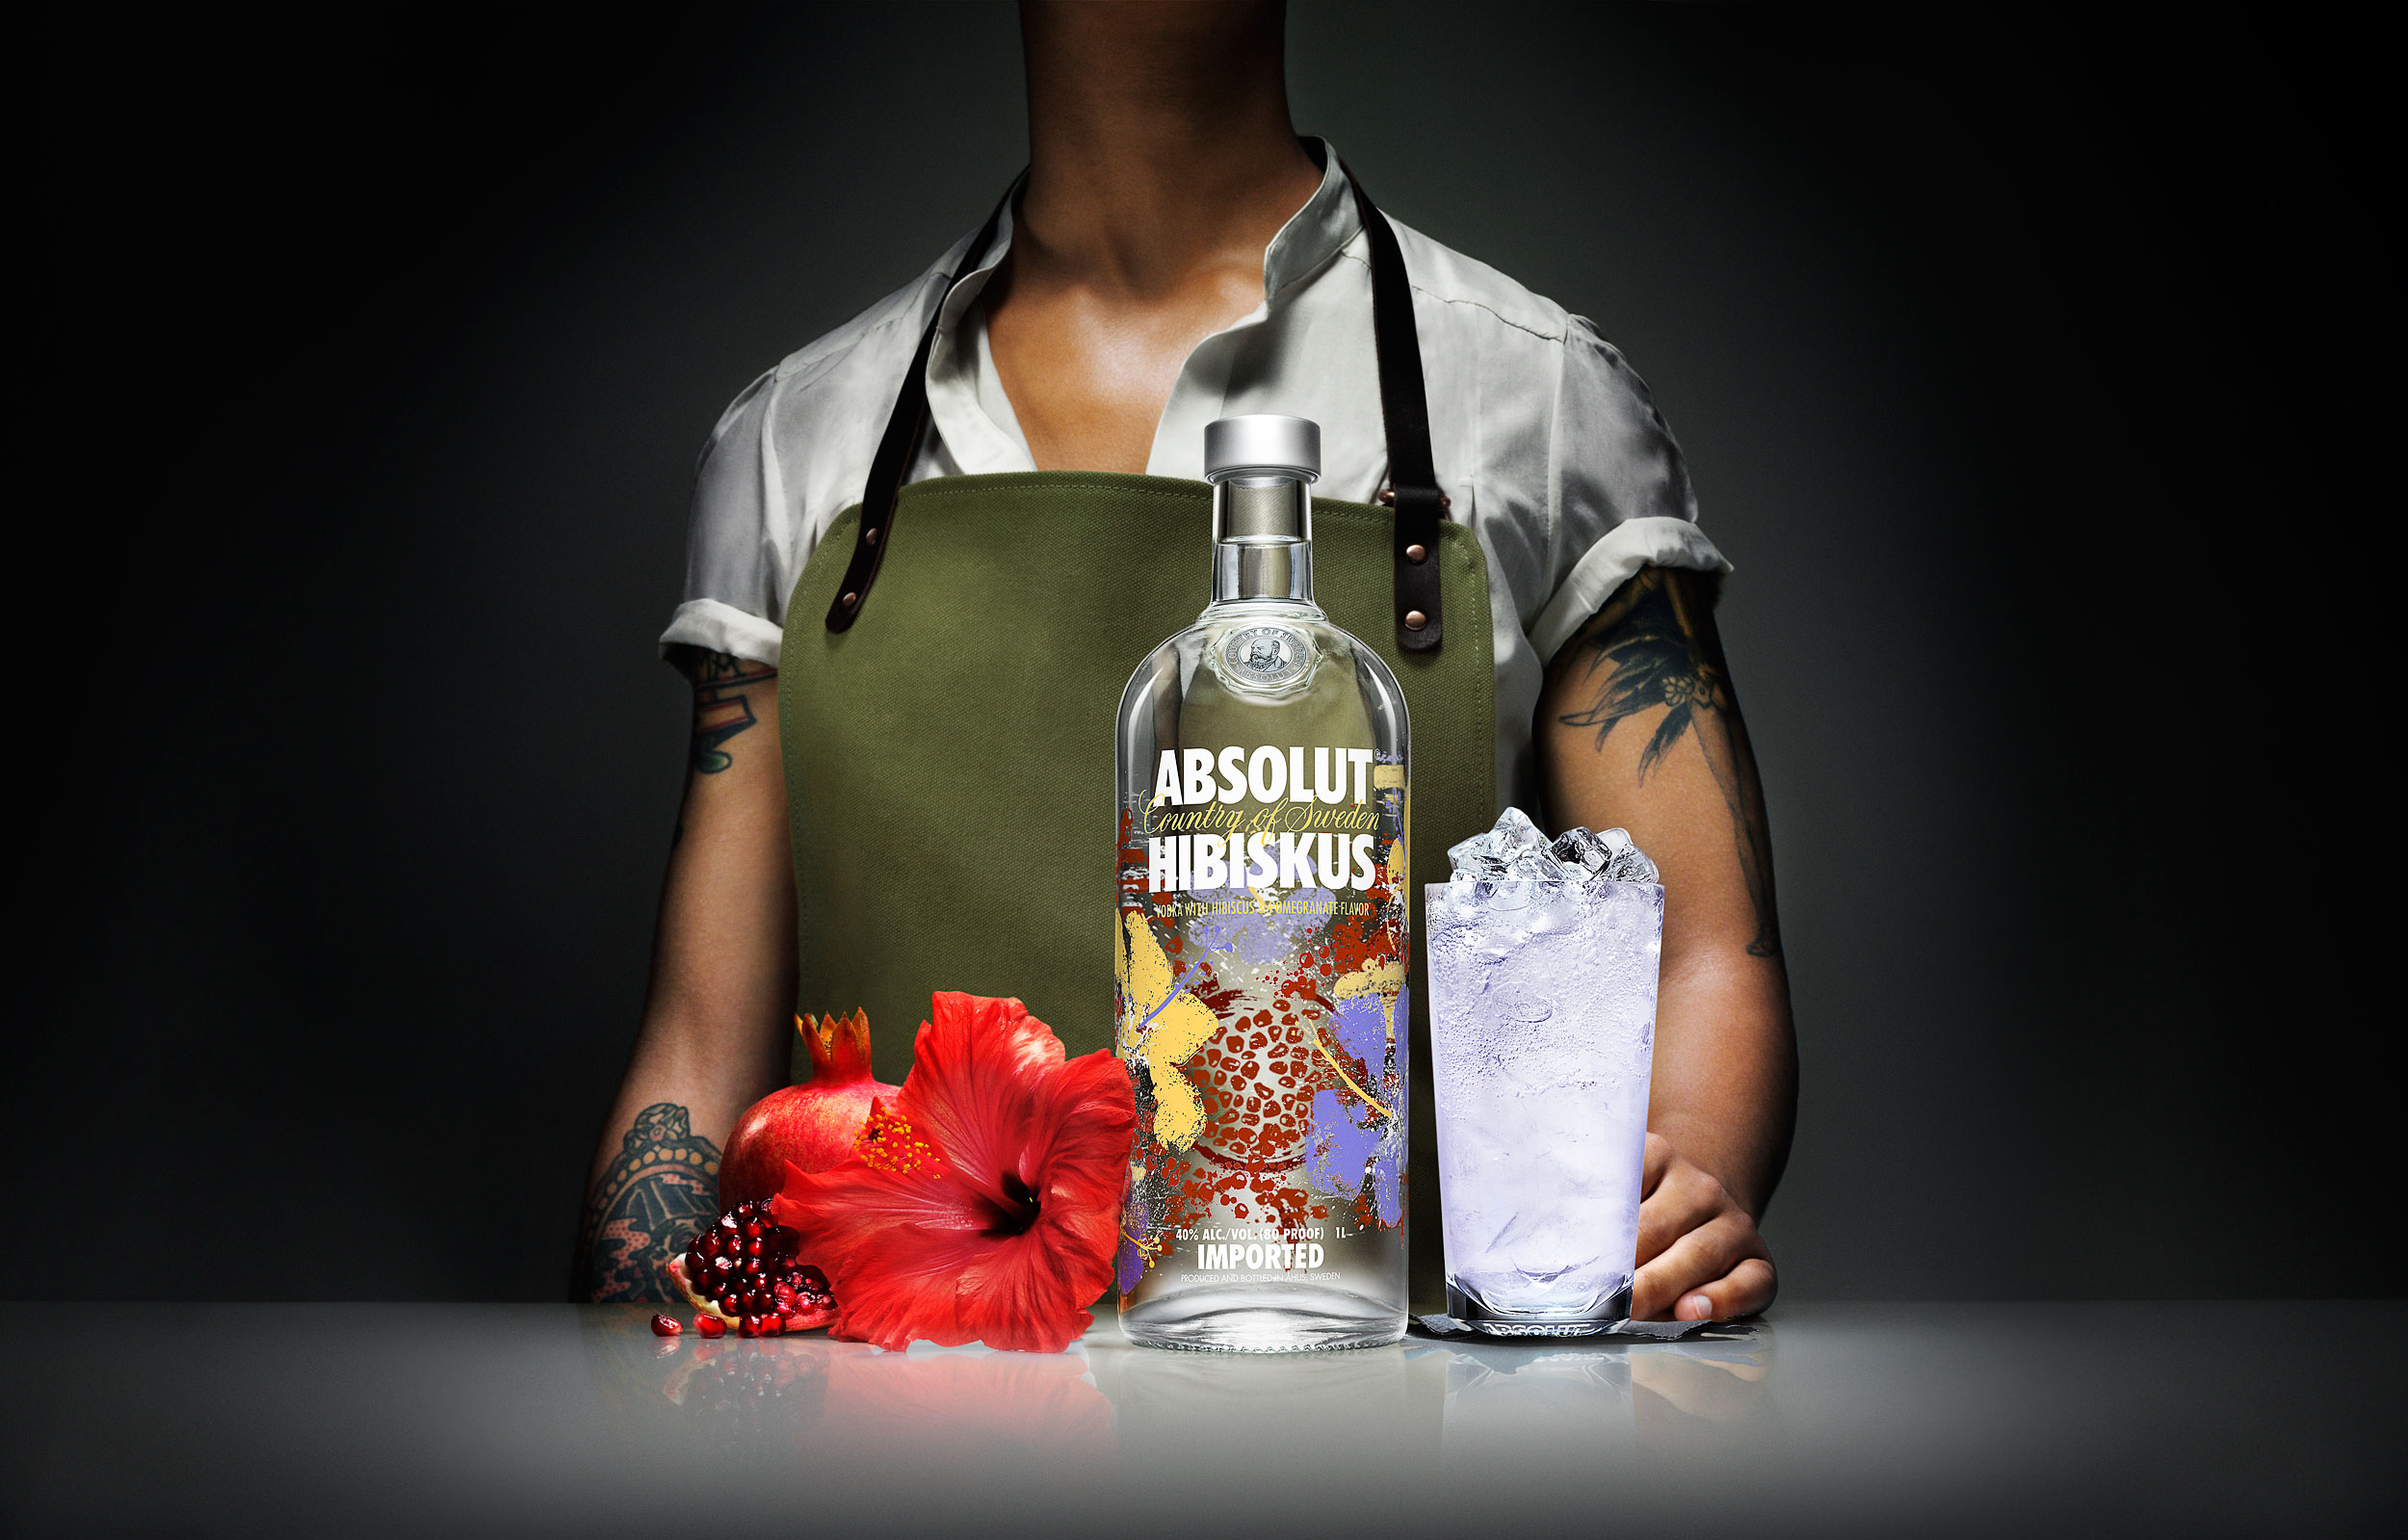 jensmortensen-absolut-vodka-84880936